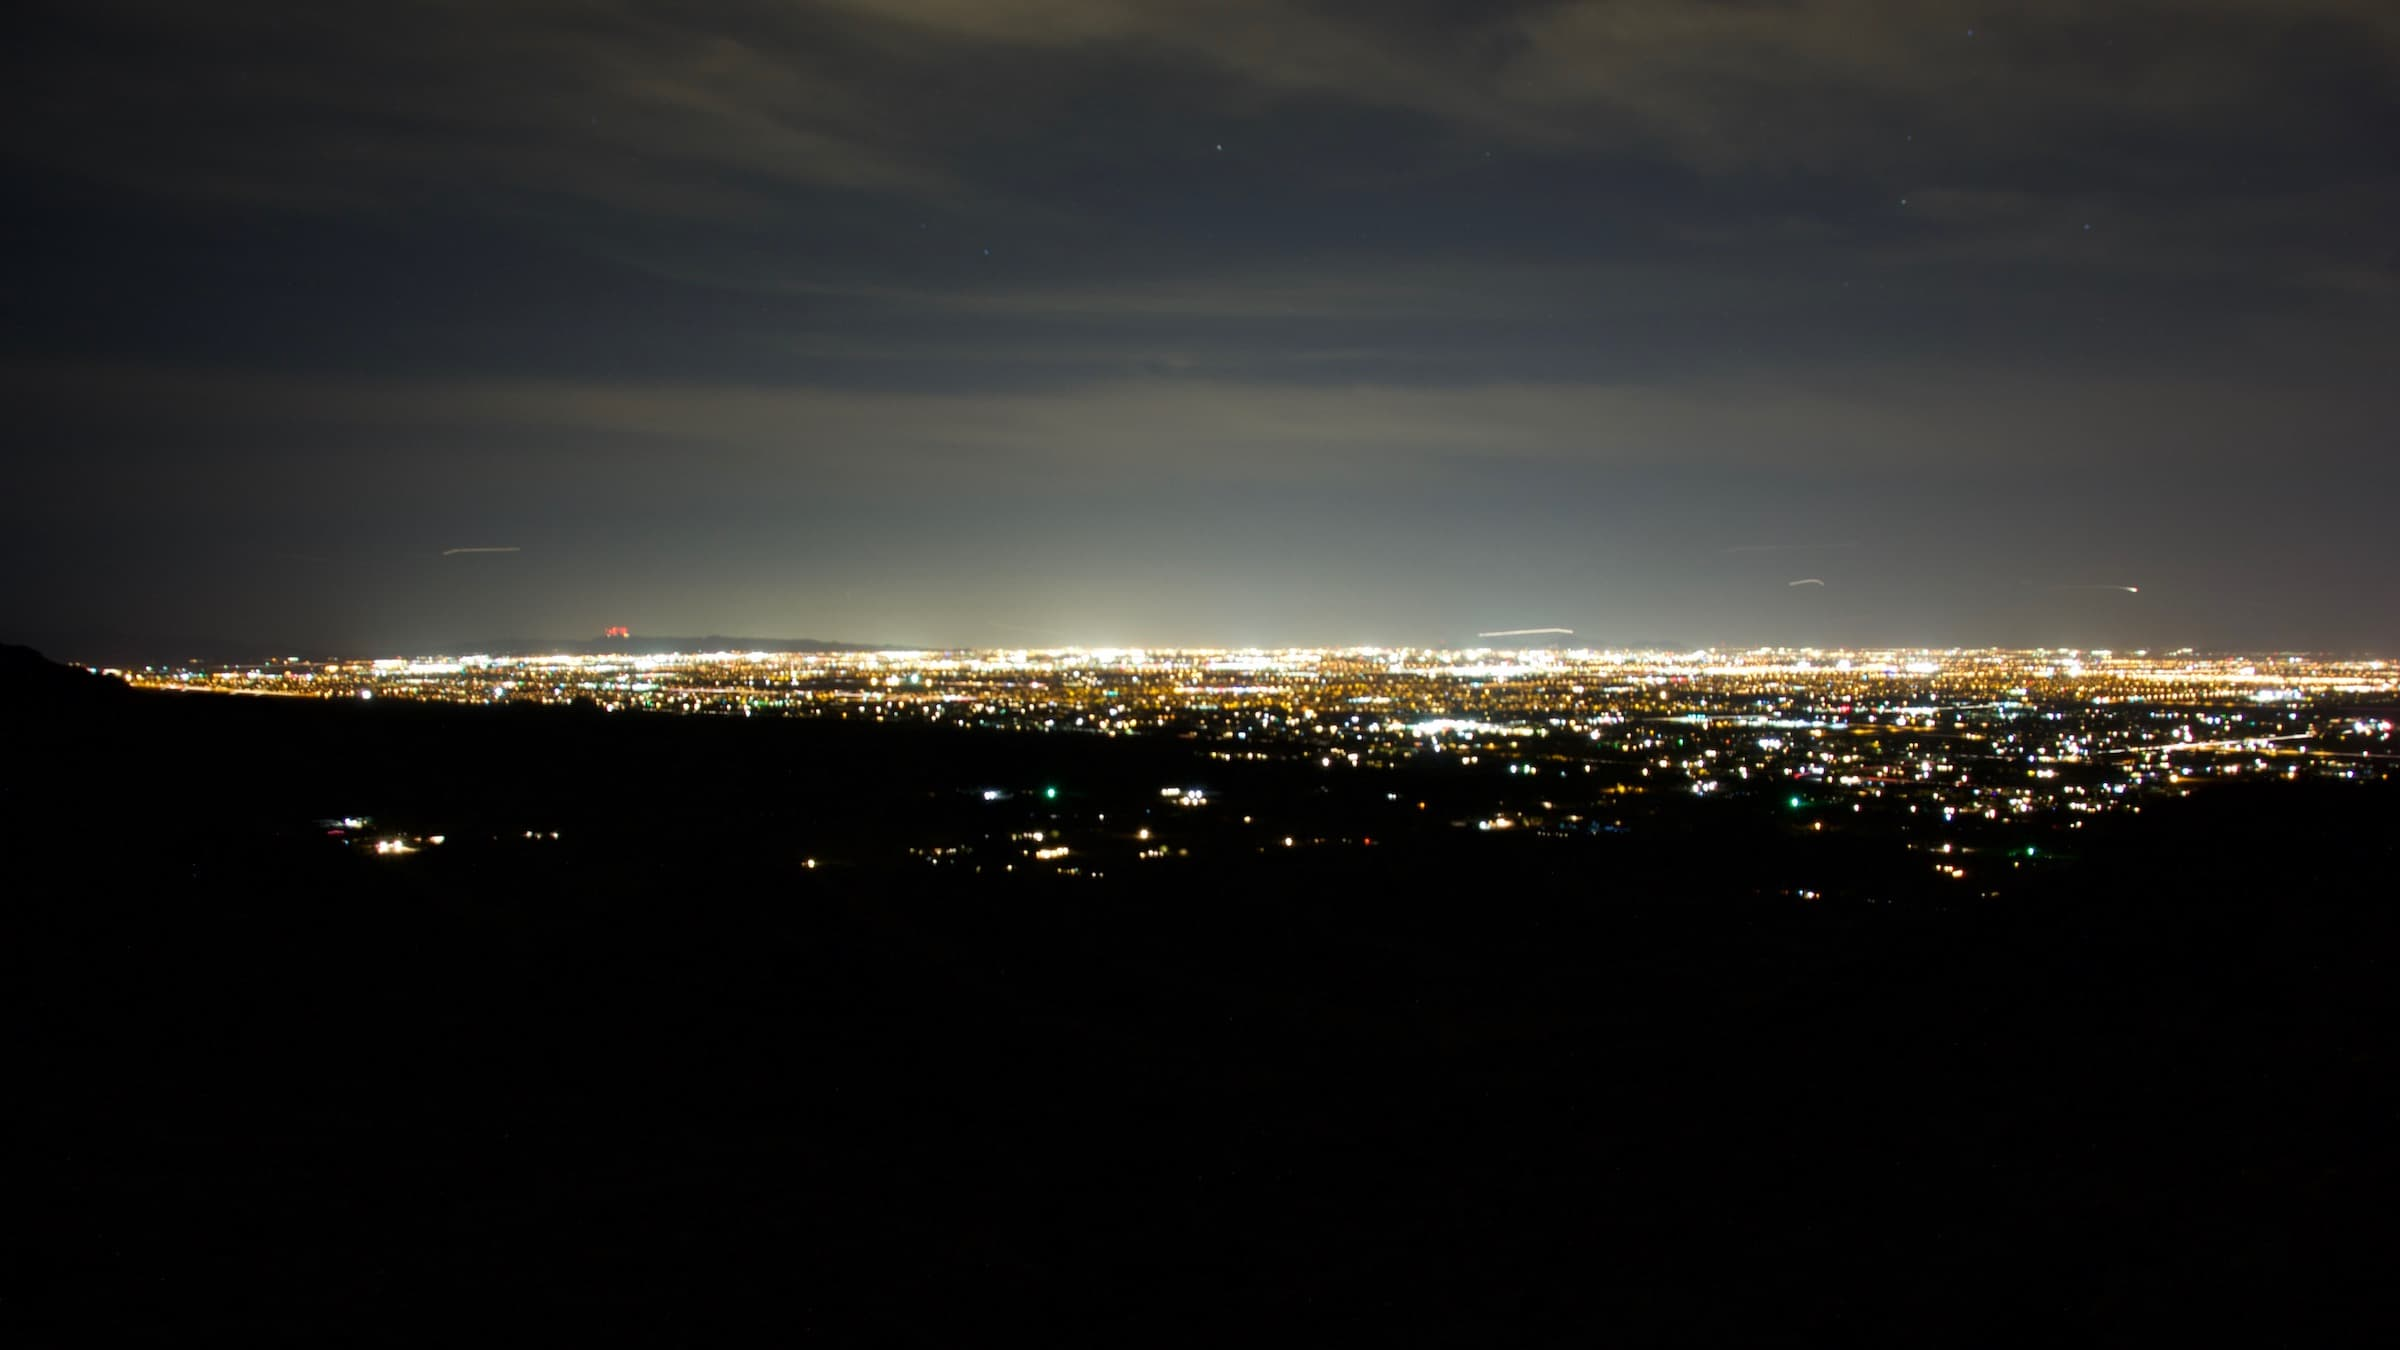 Light pollution is going to be worse and worse and it brings the bad effects to human goes deeper and deeper, we need to improve, adjust, and re-schedule the lighting systems to save ourselves and the world